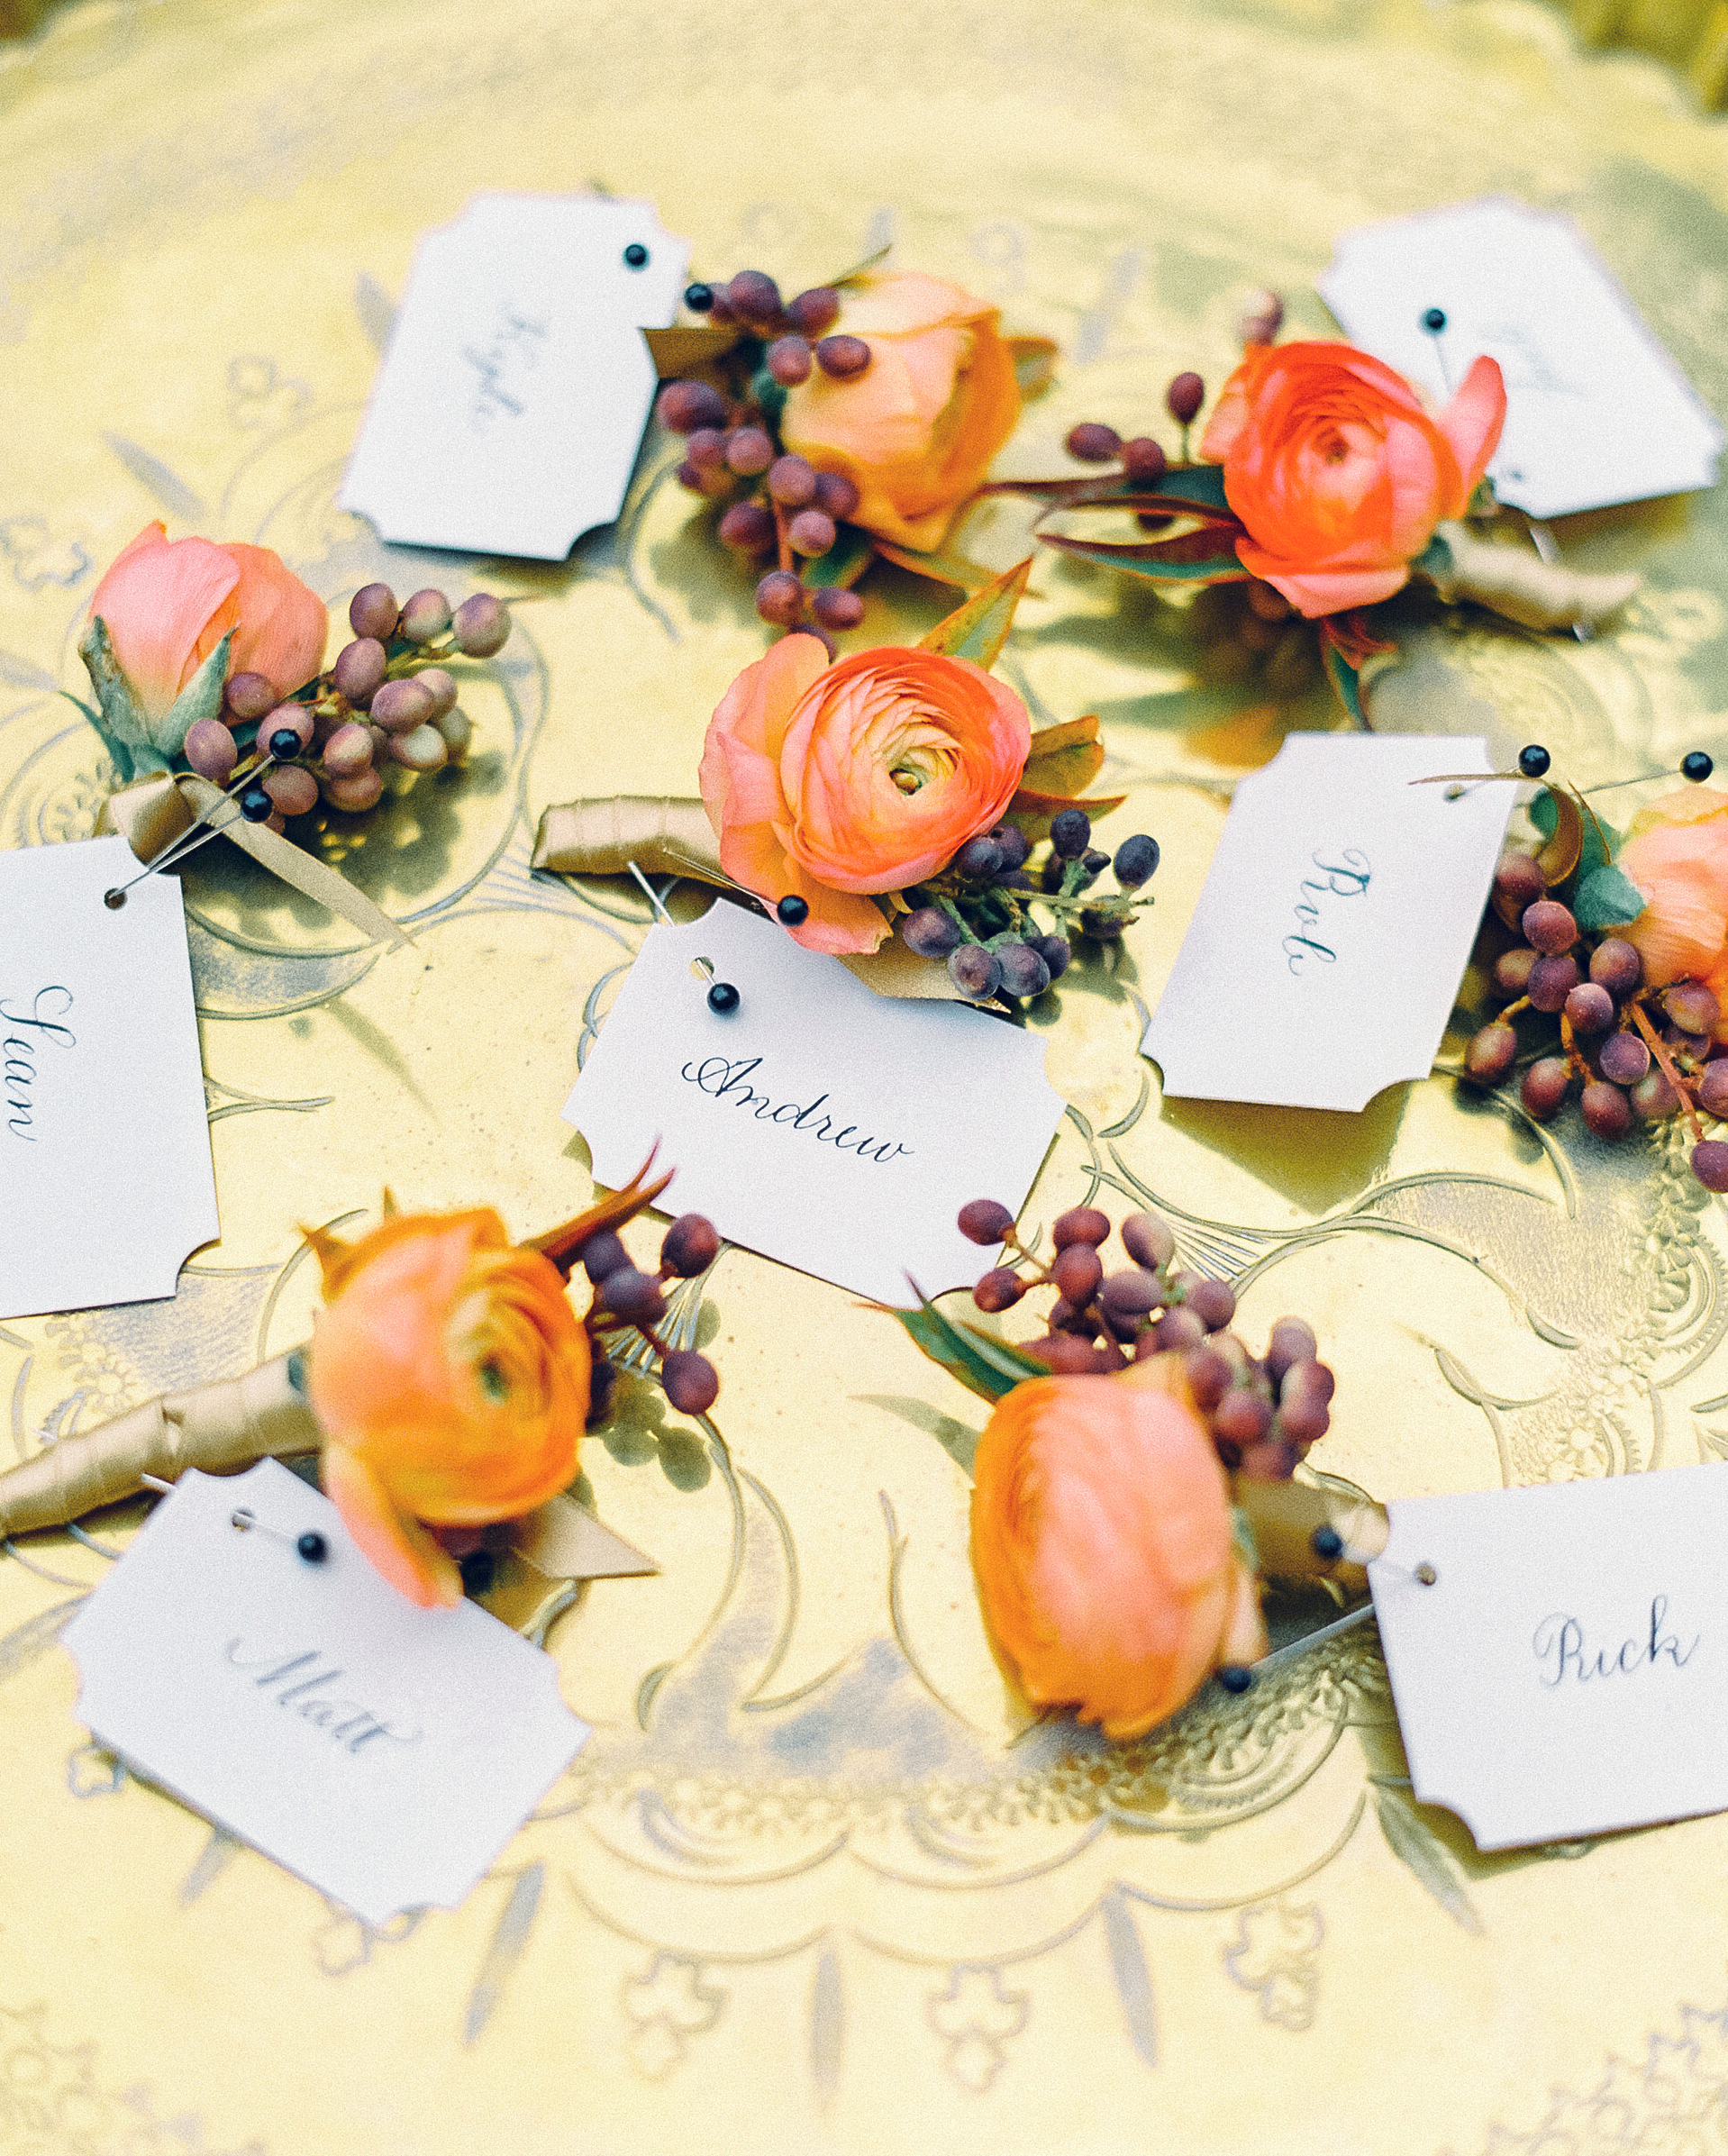 brittany-andrew-wedding-boutonnieres-036-s112067-0715.jpg